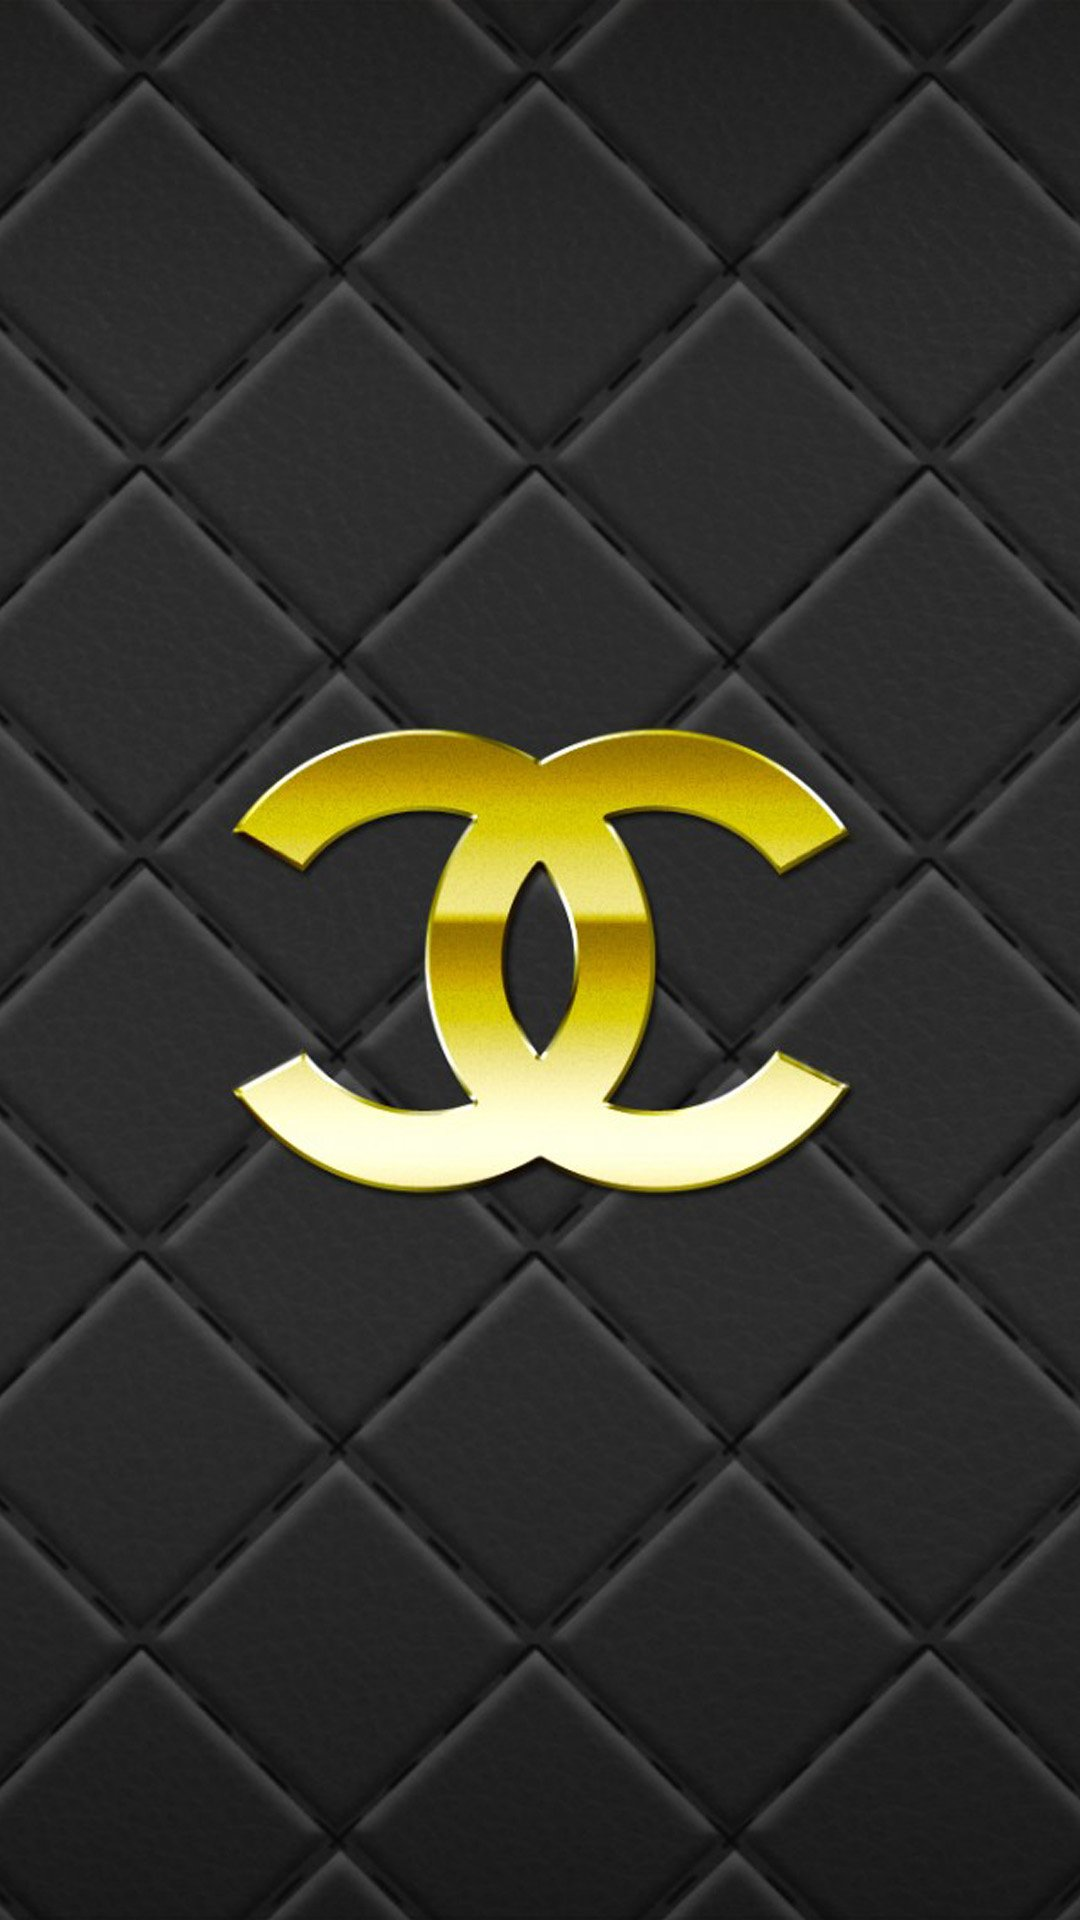 Chanel logo Nexus 5 Wallpapers Nexus 5 wallpapers and Backgrounds 1080x1920